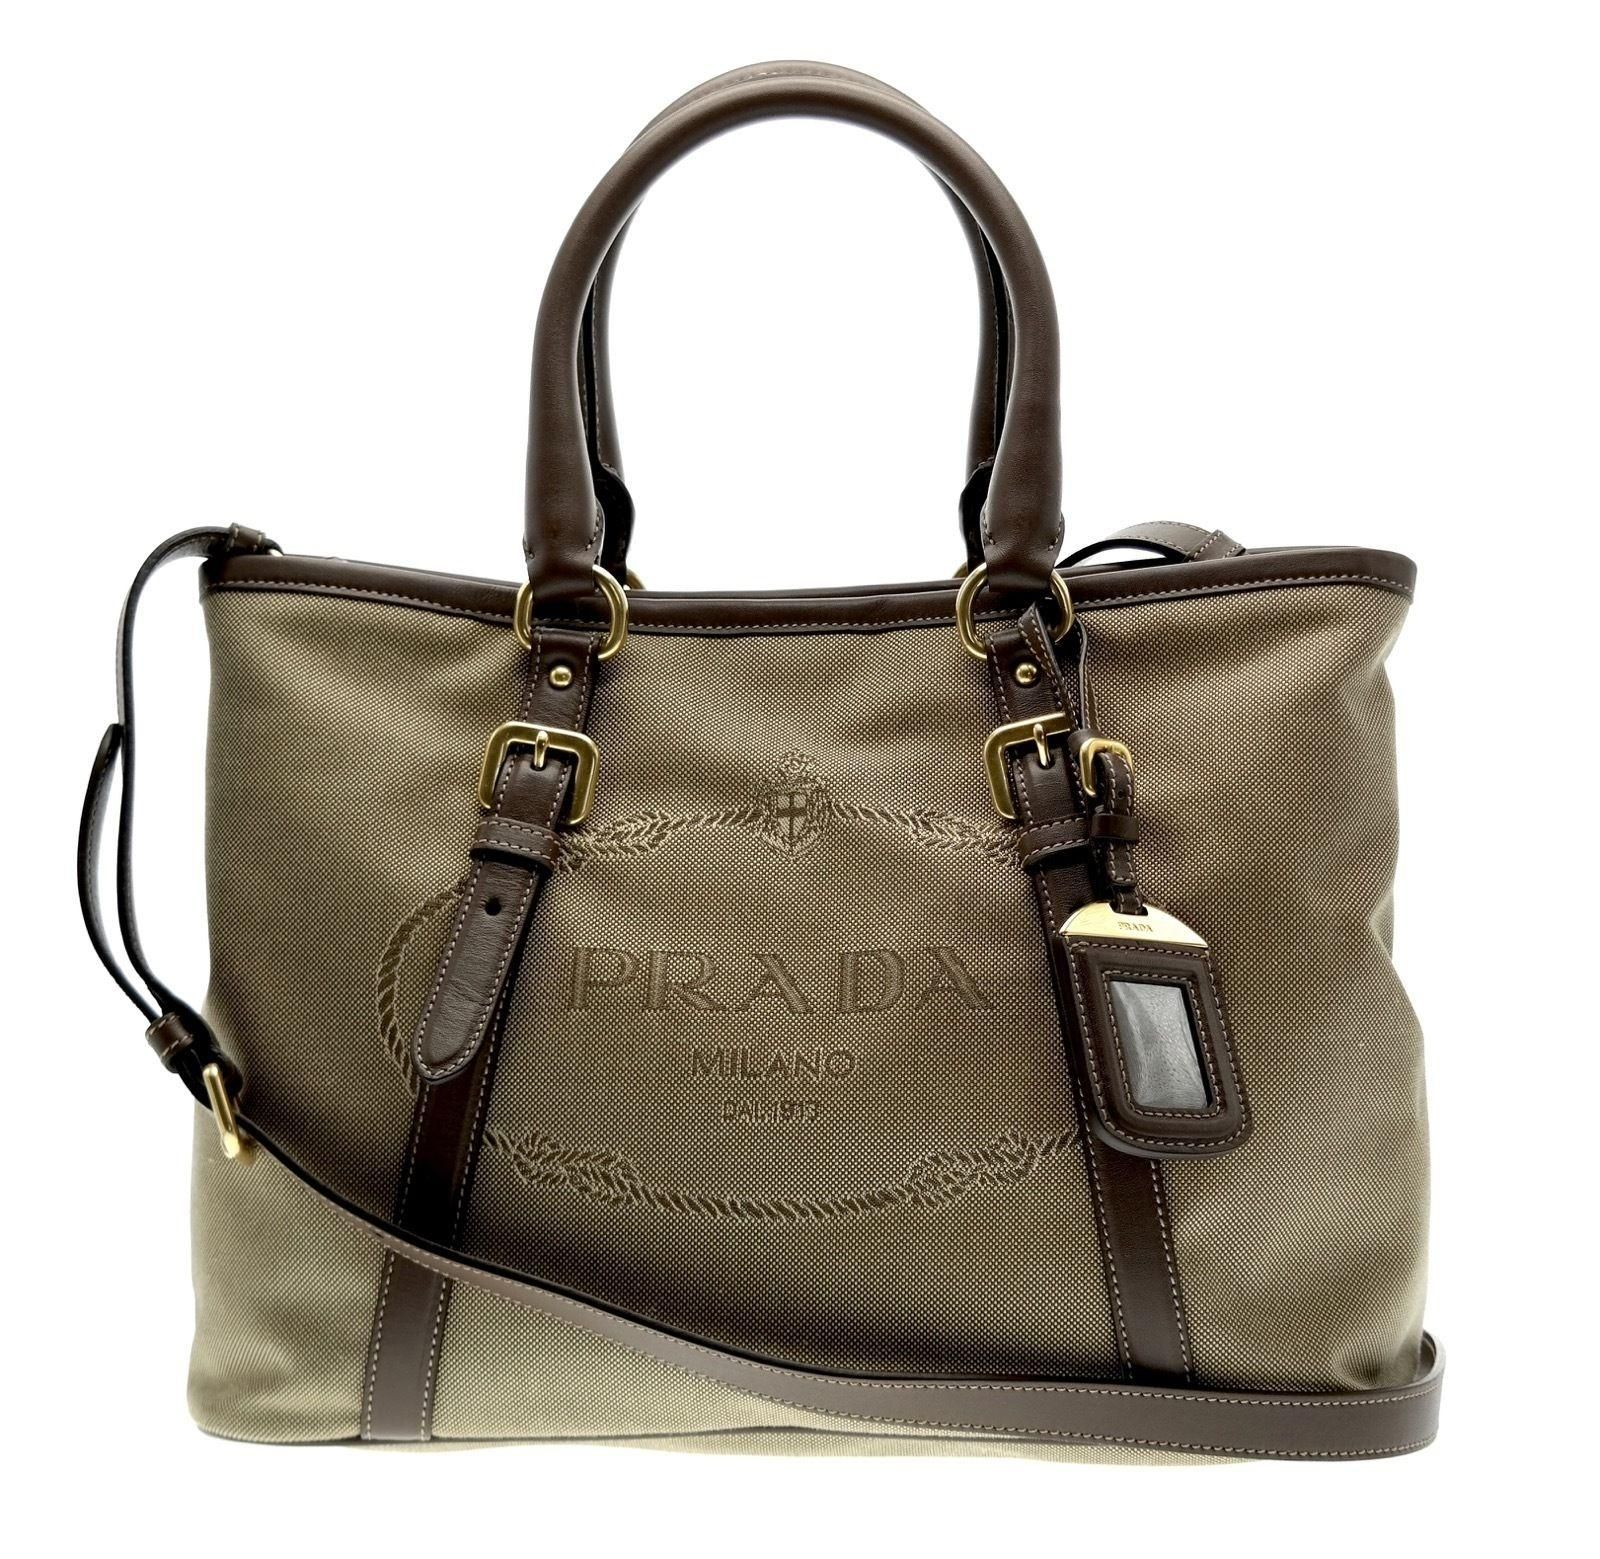 e30238da8bc8 Get one of the hottest styles of the season! The Prada Logo Jacquard Canvas  Tote Hand Crossbody Shoulder Bag is a top 10 member favorite on Tradesy.